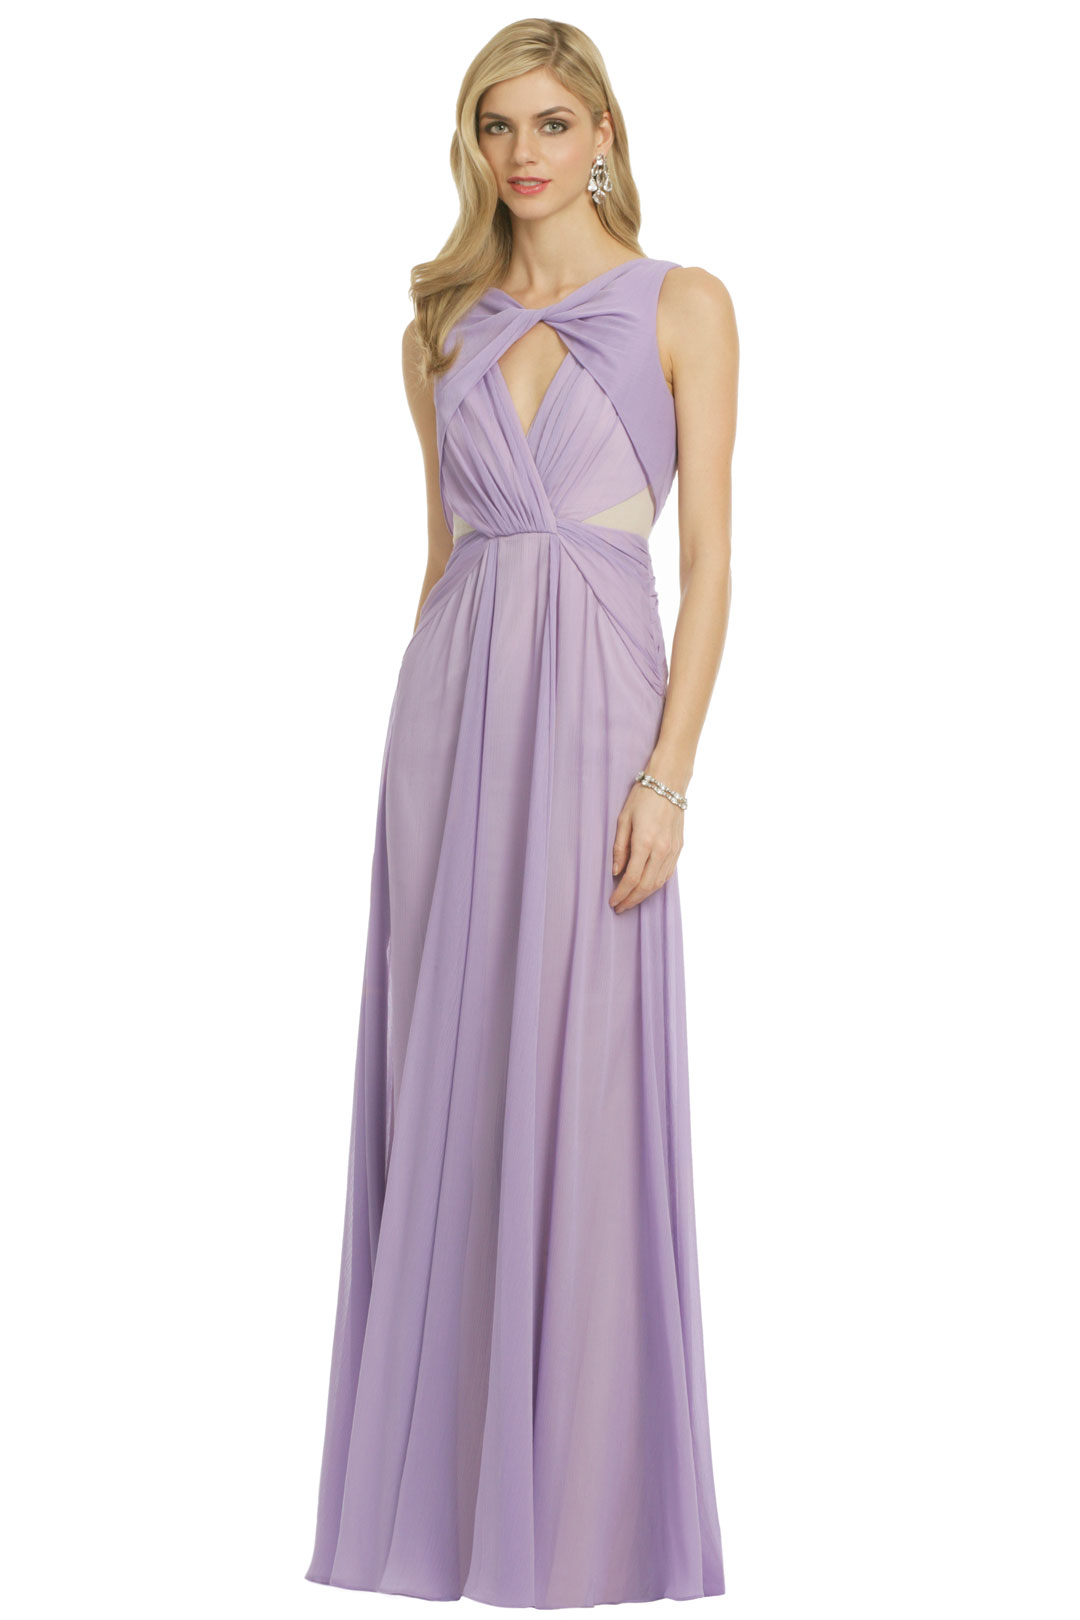 Pastel Petunia Gown by Badgley Mischka at $150 | Rent The Runway